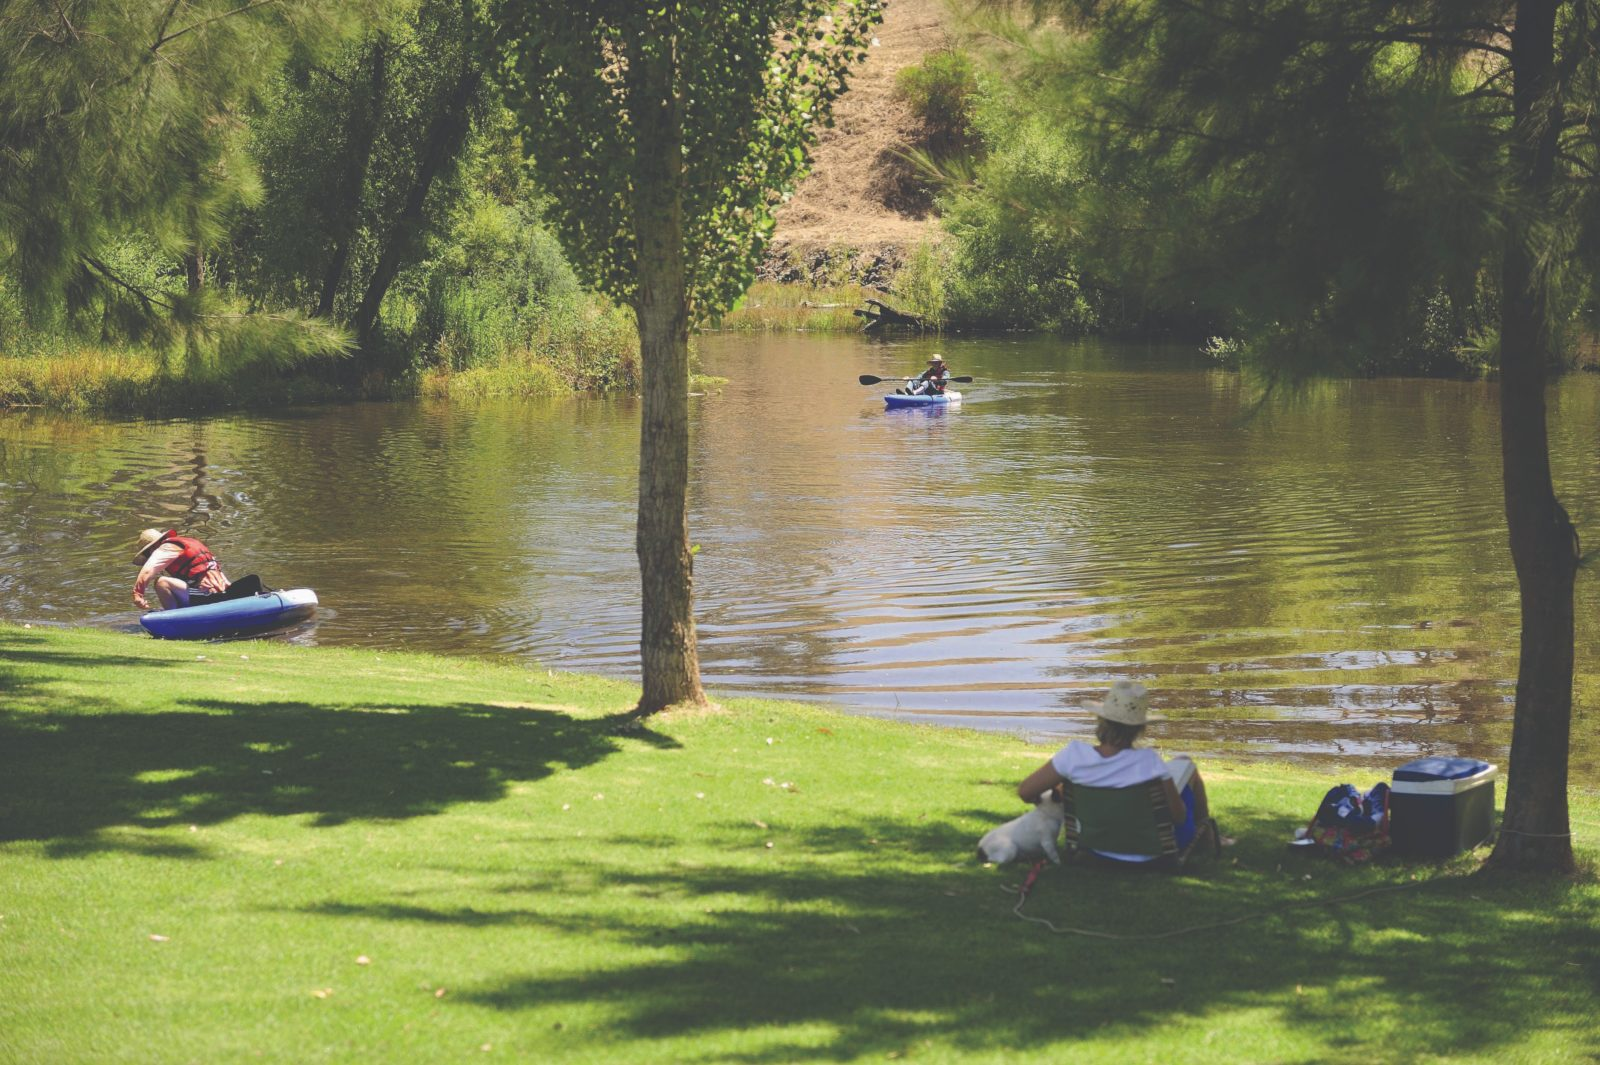 The Lions Junction Park, where two rivers meet, just out of Tumut